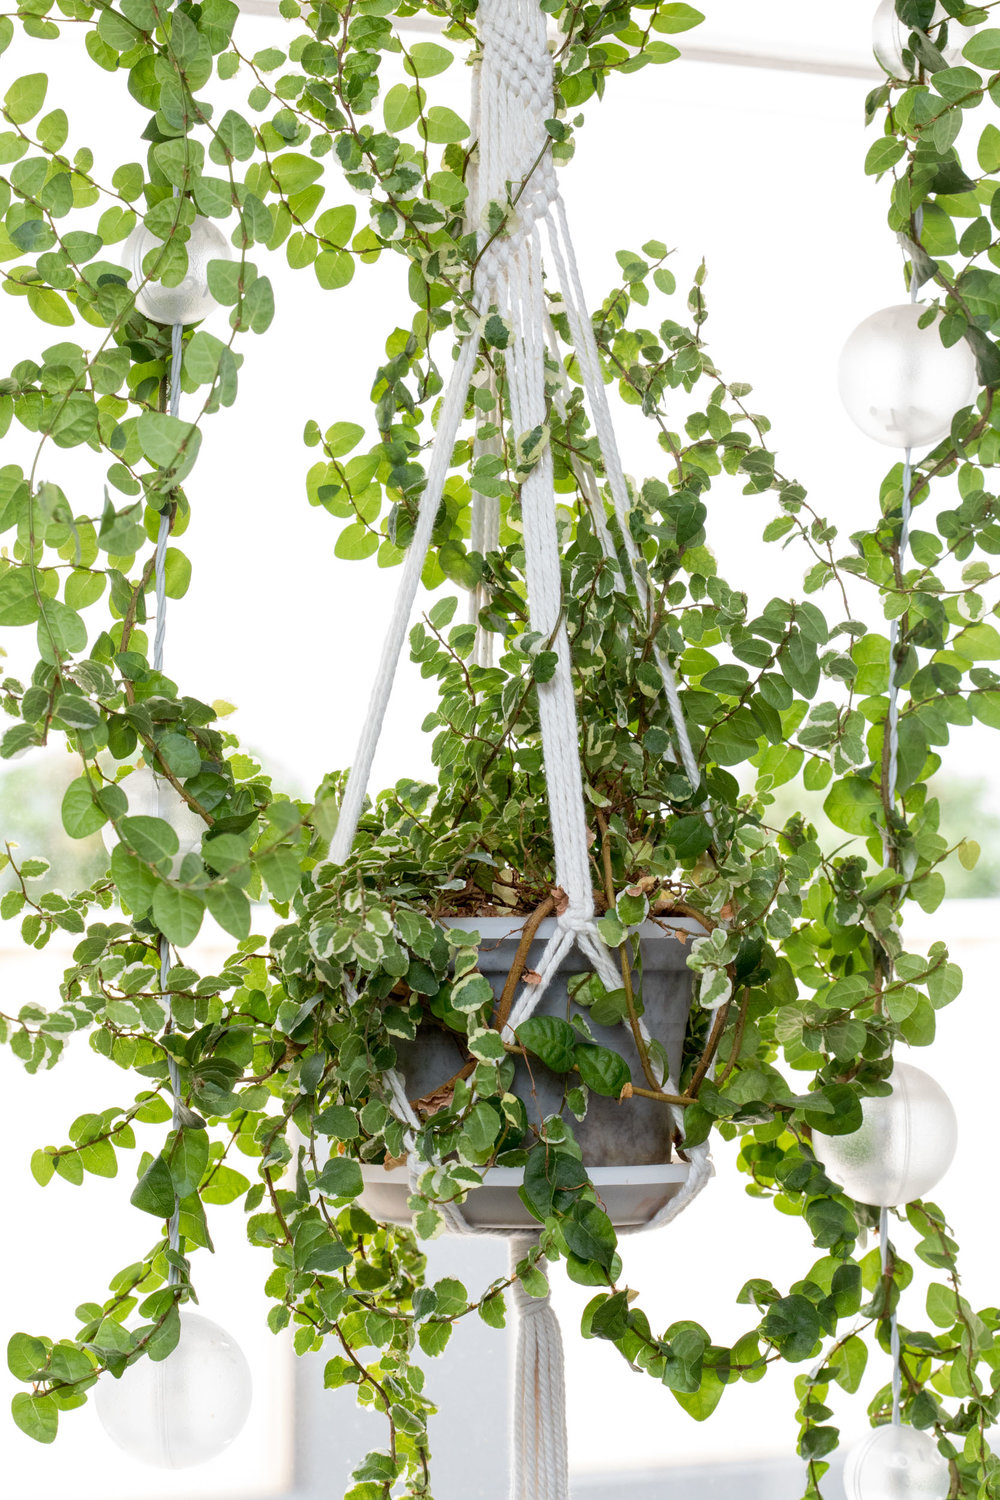 """Creeping Ficus - Latin name: Ficus pumila """"snowflake""""Pot: Hanging, selfWater: keep moist, occasionalLighting: Indirect, shade, can actually tolerate full sun over timePlanting medium: 1 part good quality potting mixFertilise:Once every 6 months with Dynamic Lifter pellets (teaspoon)Seasol (seaweed extract) once ever 2 monthsThrive high Nitrogen liquid fertiliser once every 3-4 monthsReproduction: stem cuttings, root division"""